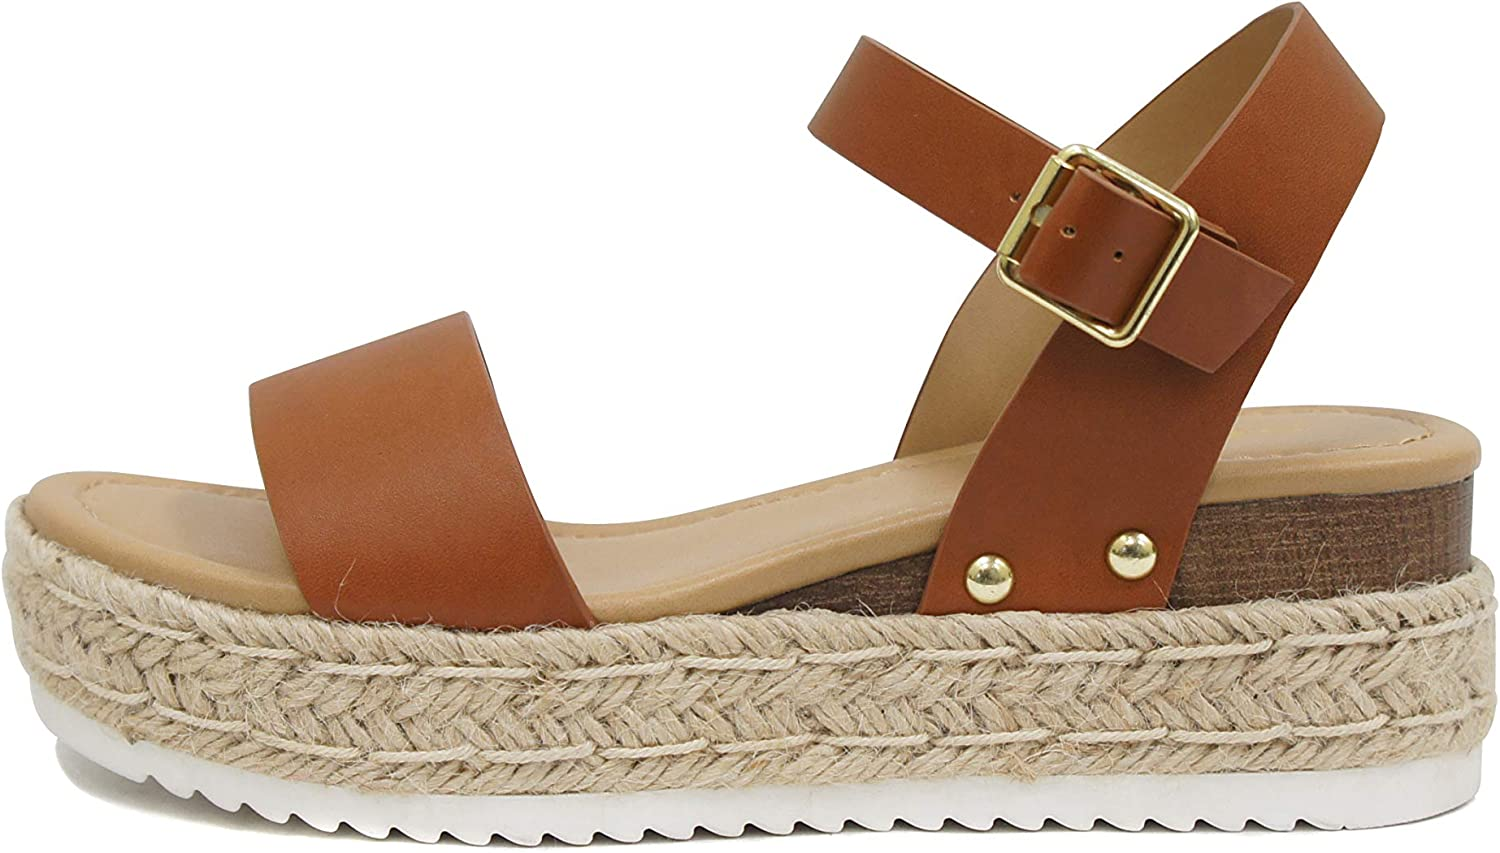 Soda Clip by TrendyFashion ~ Open Toe Single Band Espadrille Jute Platform Flatform Casual Fashion Sandals with Buckle Ankle Strap